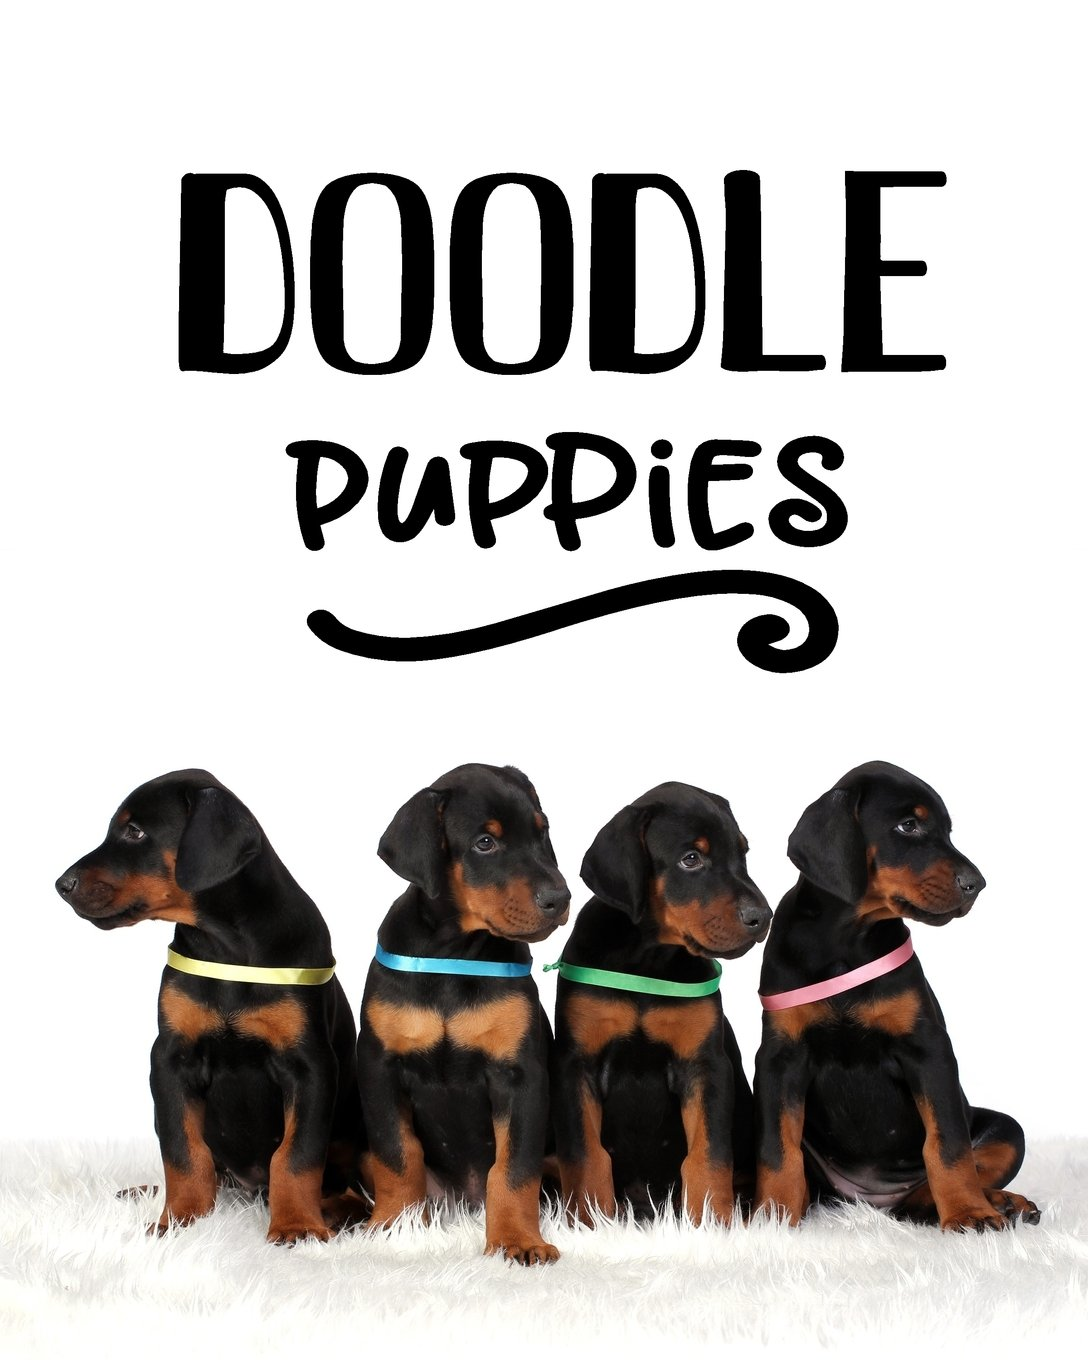 doodle-puppies-blank-journals-to-write-in-doodle-in-draw-in-or-sketch-in-8-x-10-150-unlined-blank-pages-blank-notebook-diary